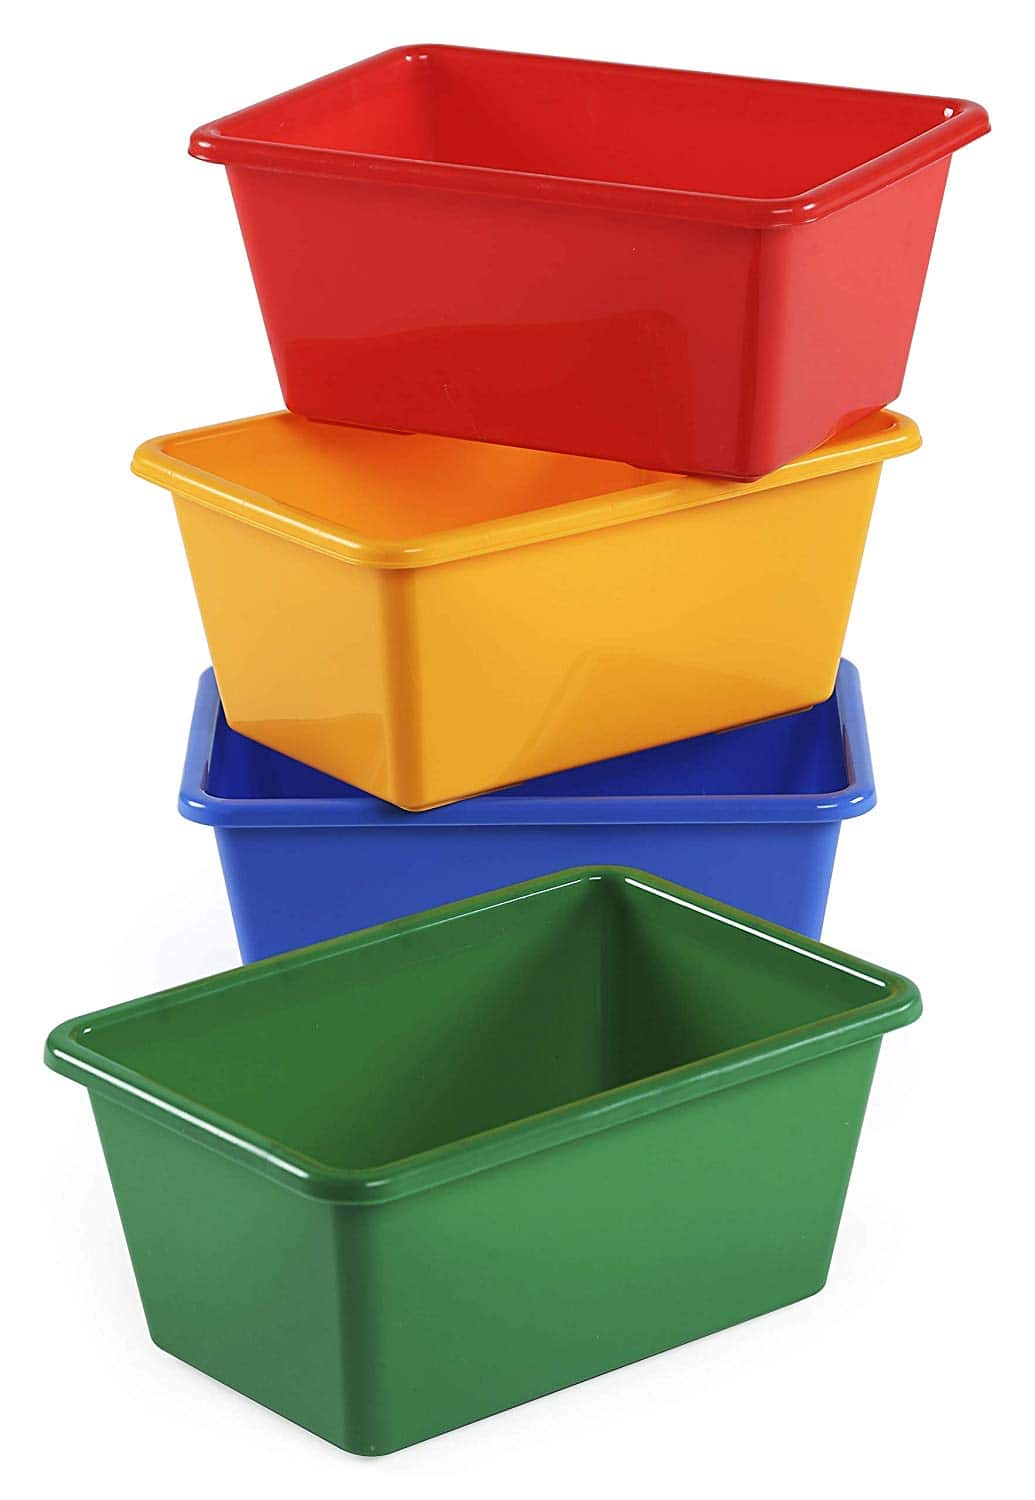 4-Pc Tot Tutors Kids' Primary Colors Small Storage Bins $5 + Free Shipping w/ Prime